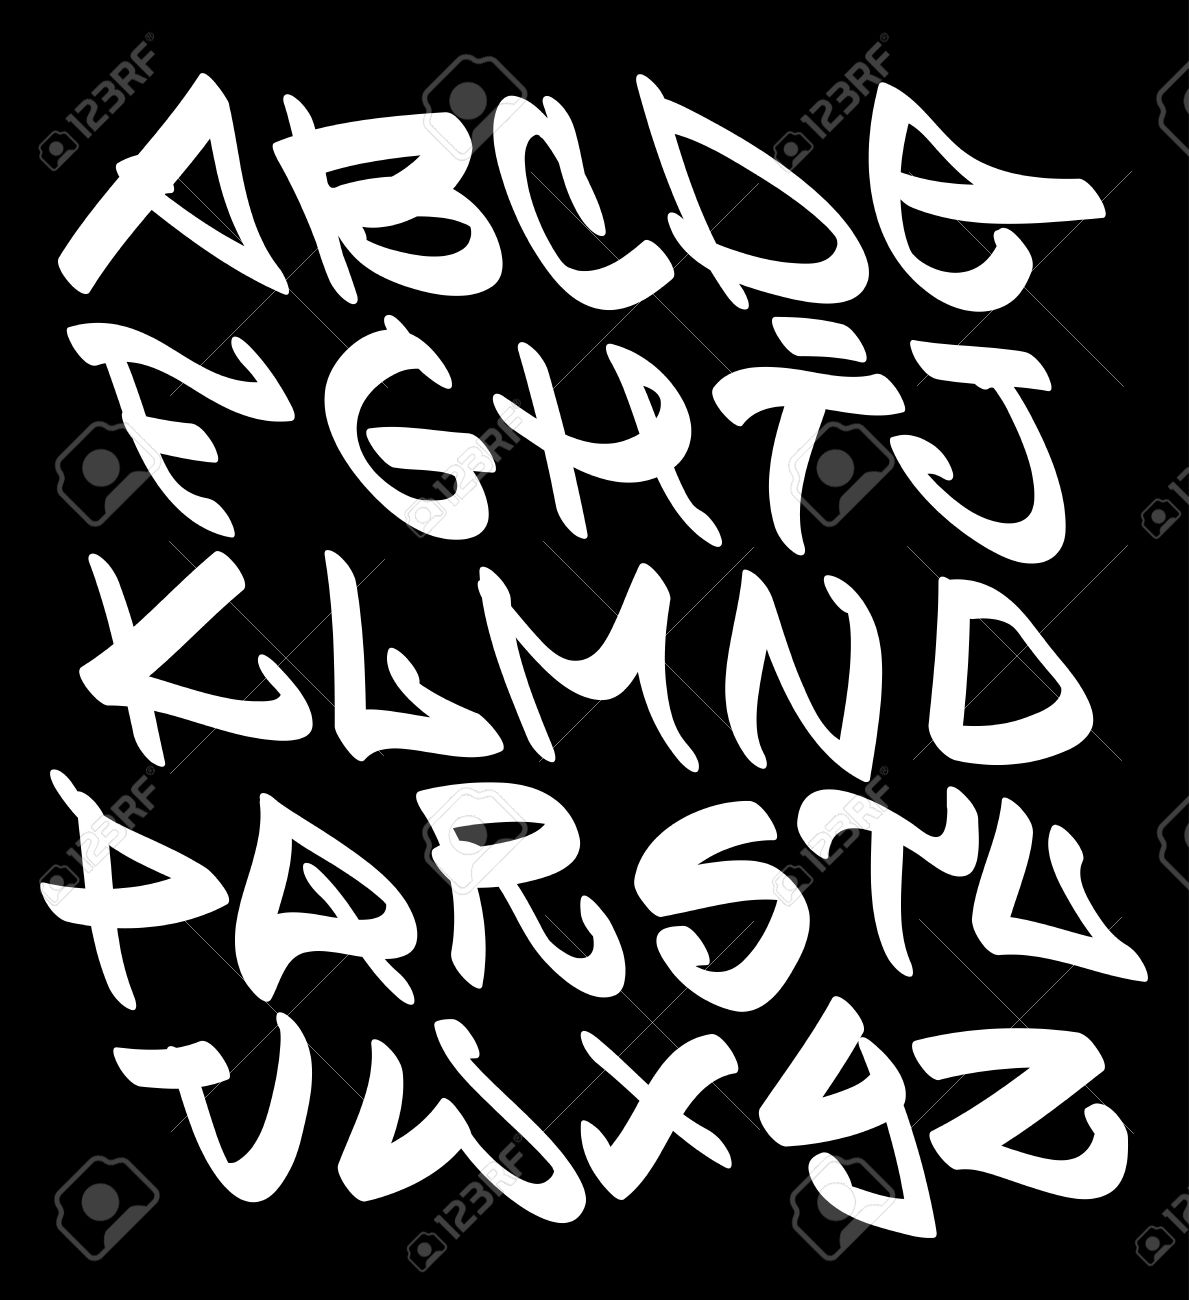 Graffiti Font Alphabet Letters Hip Hop Type Grafitti Design Royalty